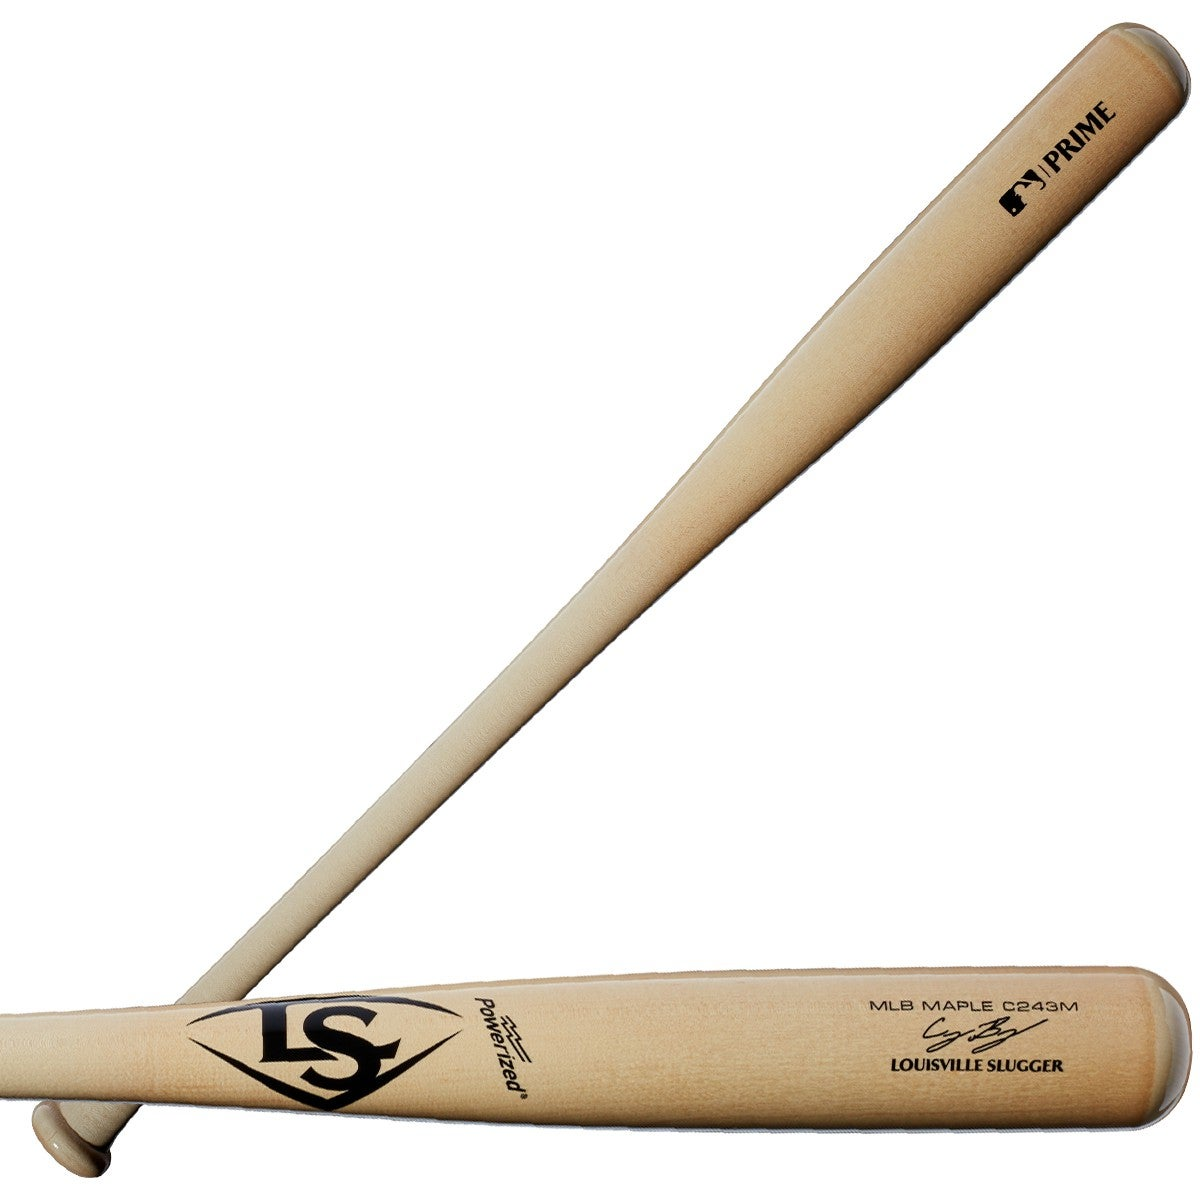 MLB Pro Prime C243M Cody Bellinger Game Model Baseball Bat